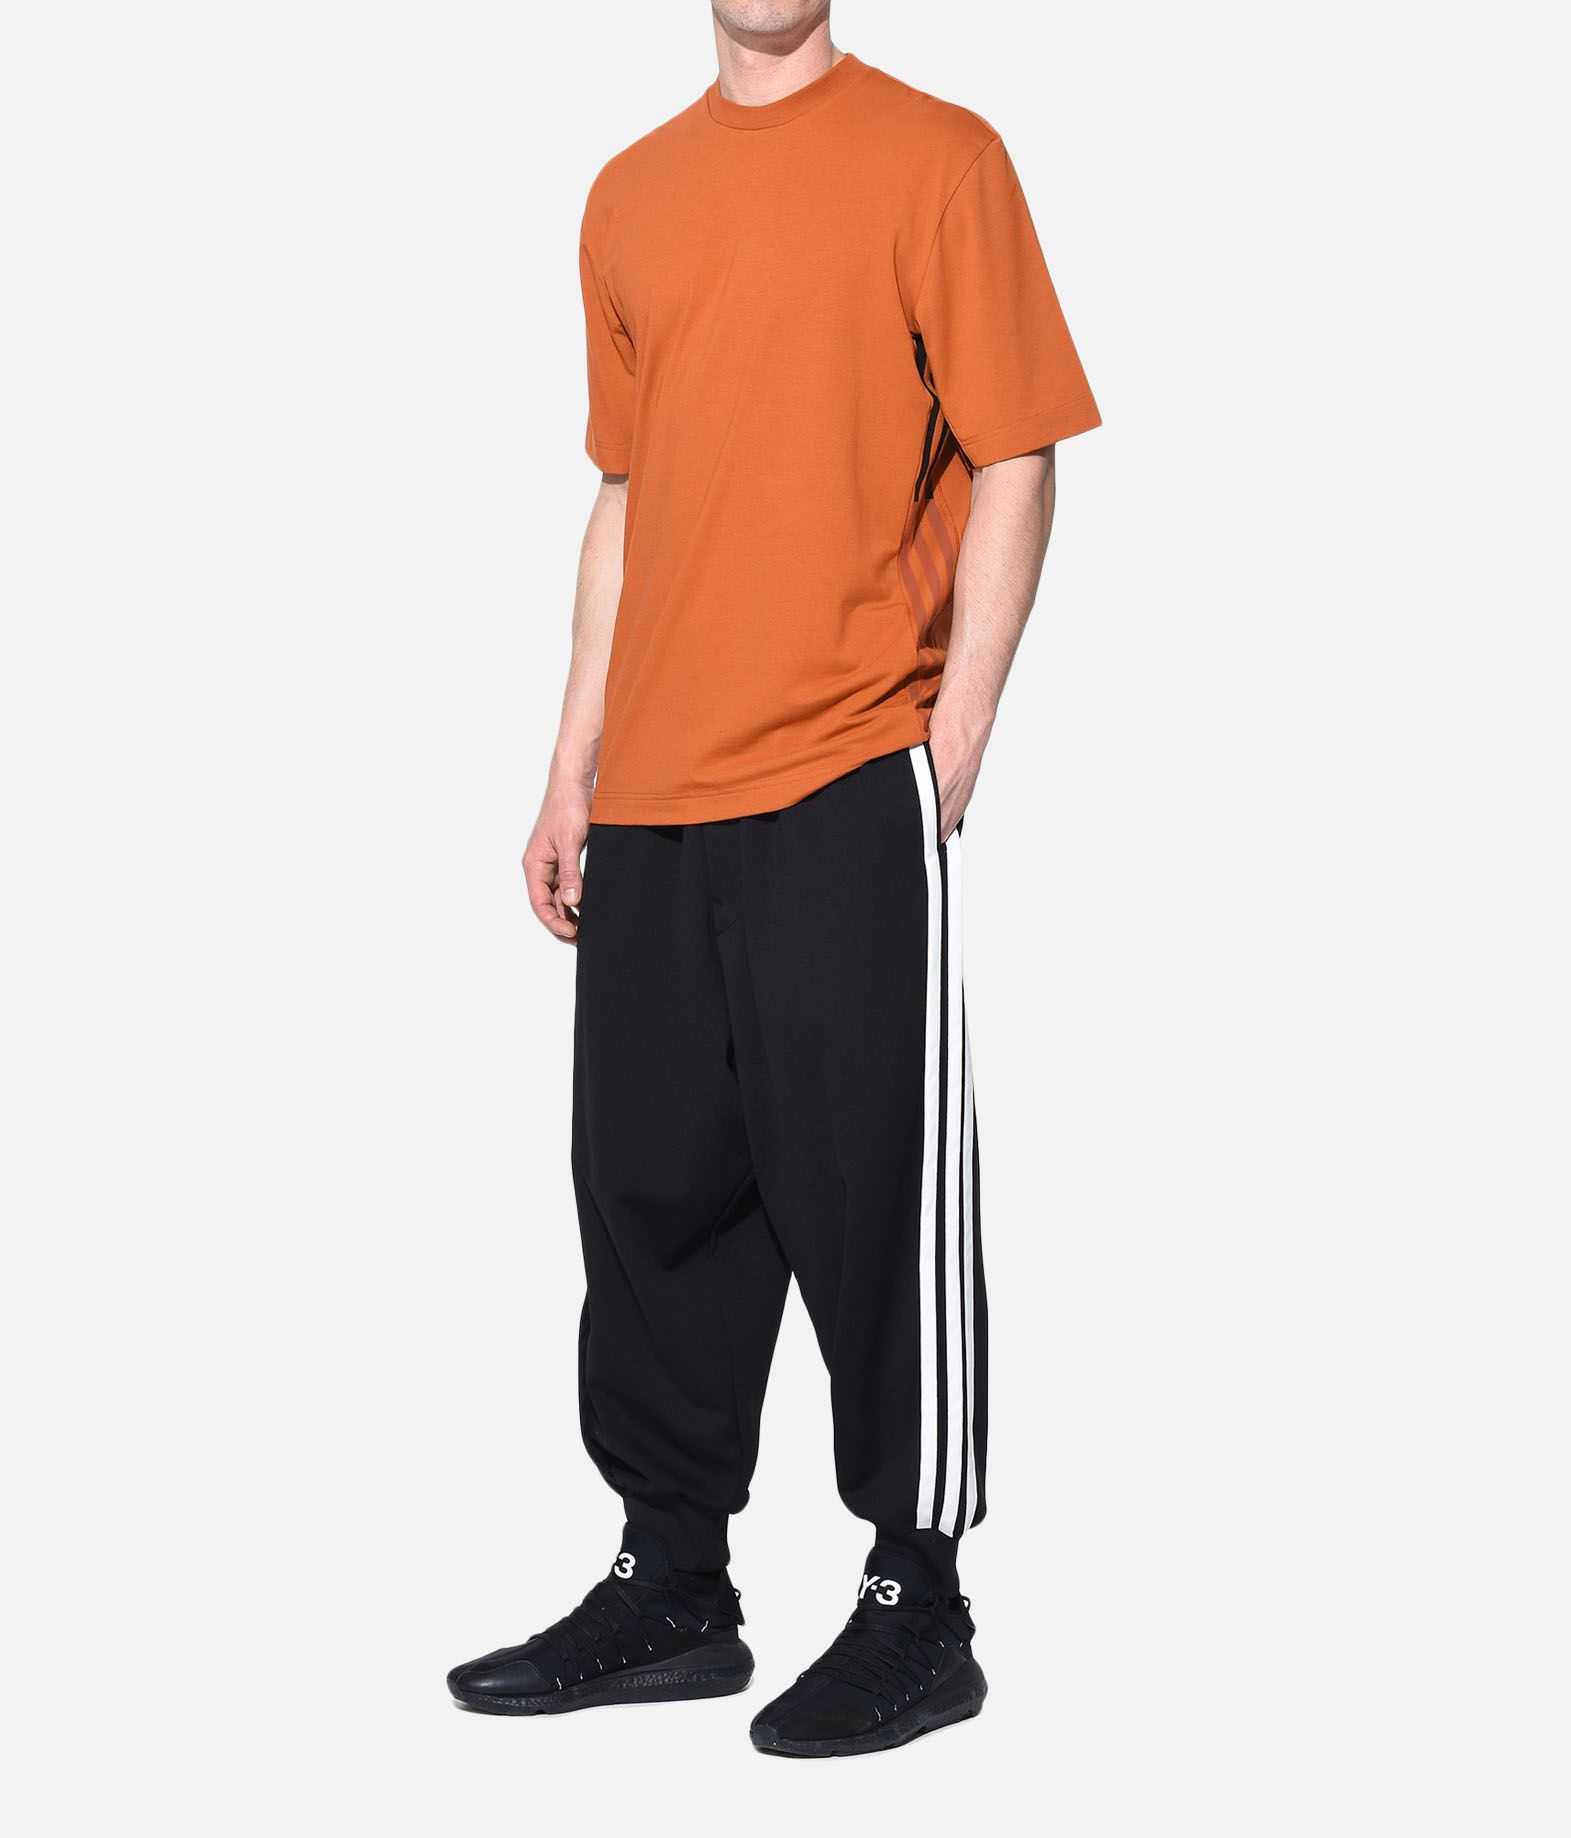 Y-3 Y-3 3-Stripes Tee Kurzärmliges T-shirt Herren a